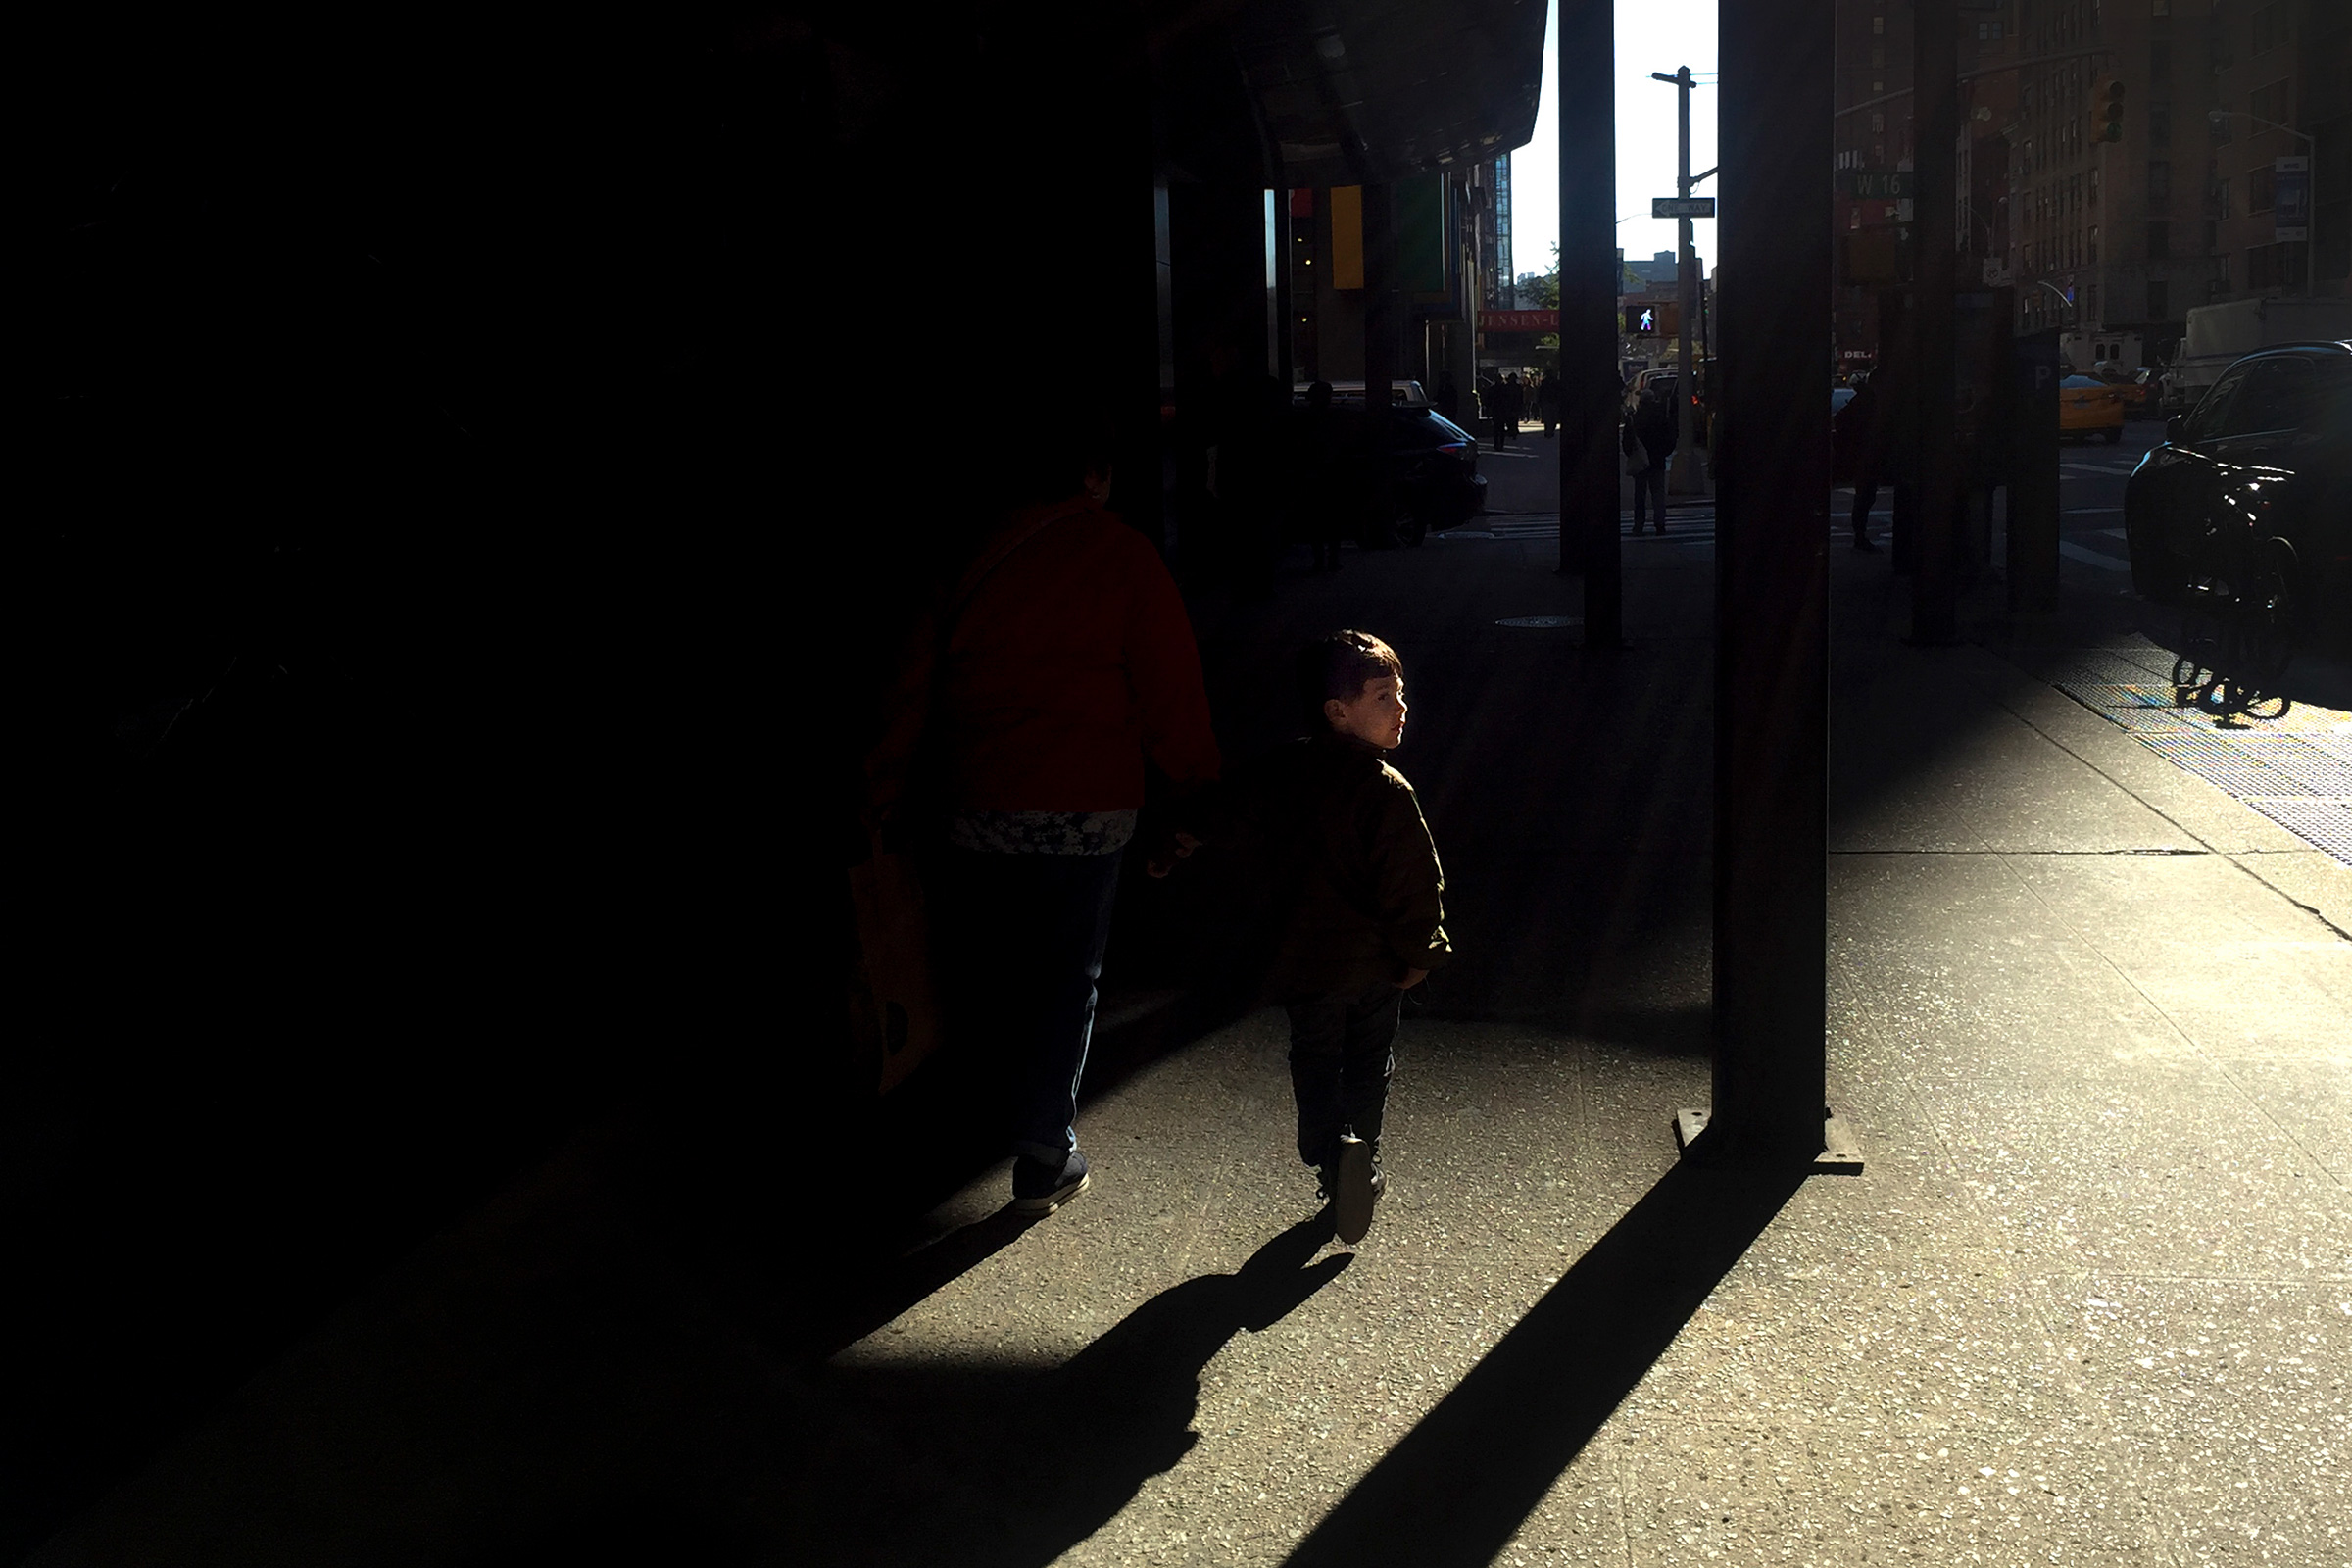 A scene-scape of New York capturing a young boy walking by.